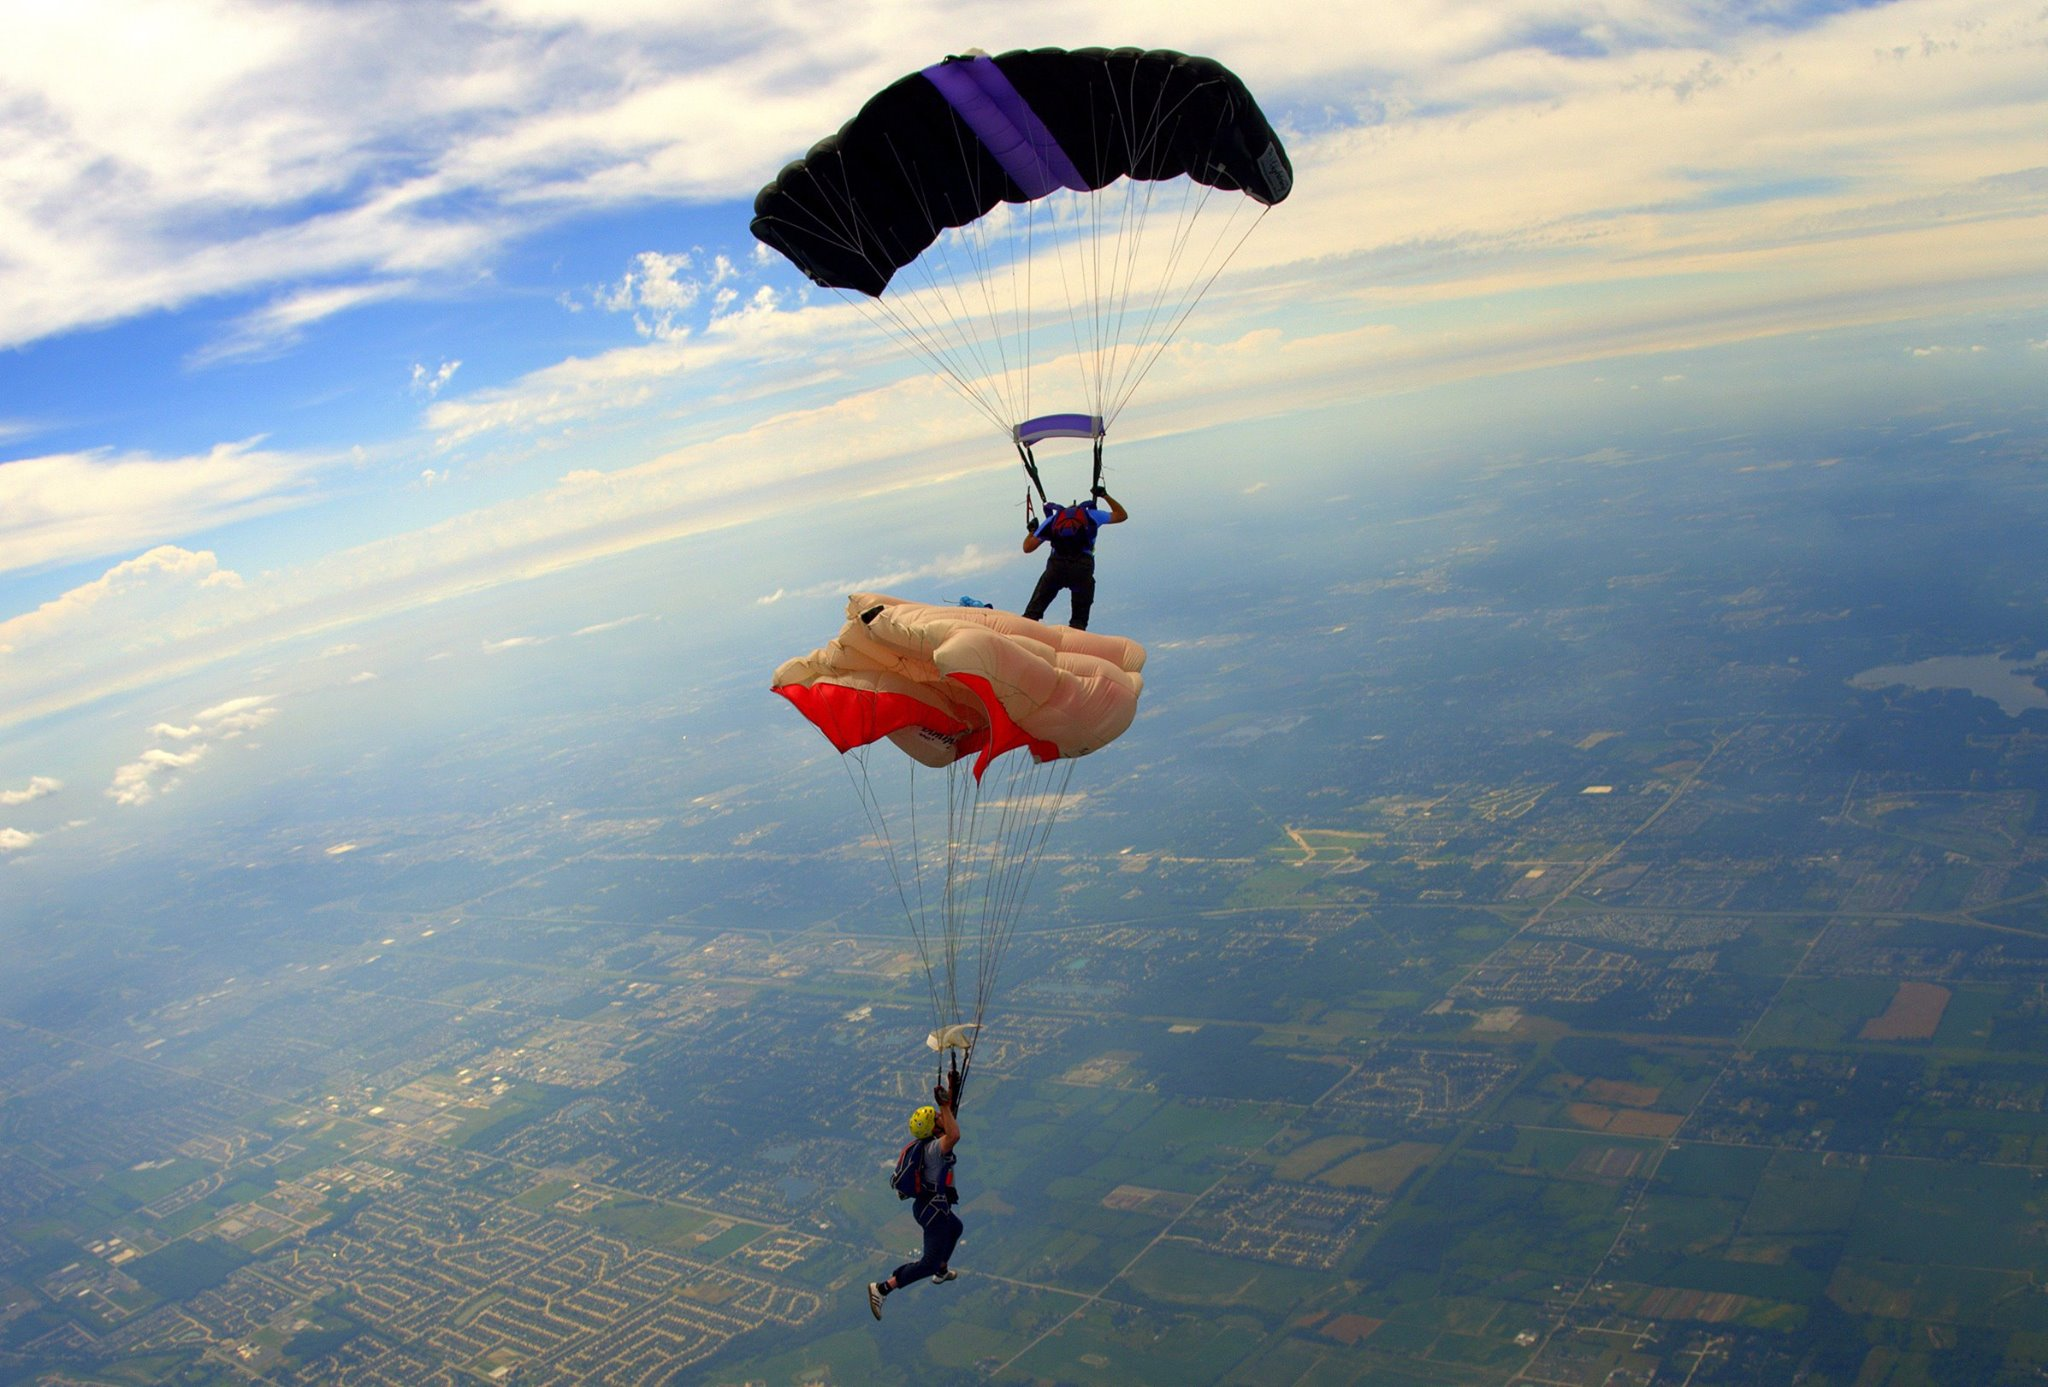 Parachuting wikipedia two parachutists perform a dock on a canopy relative work crew jump ccuart Choice Image